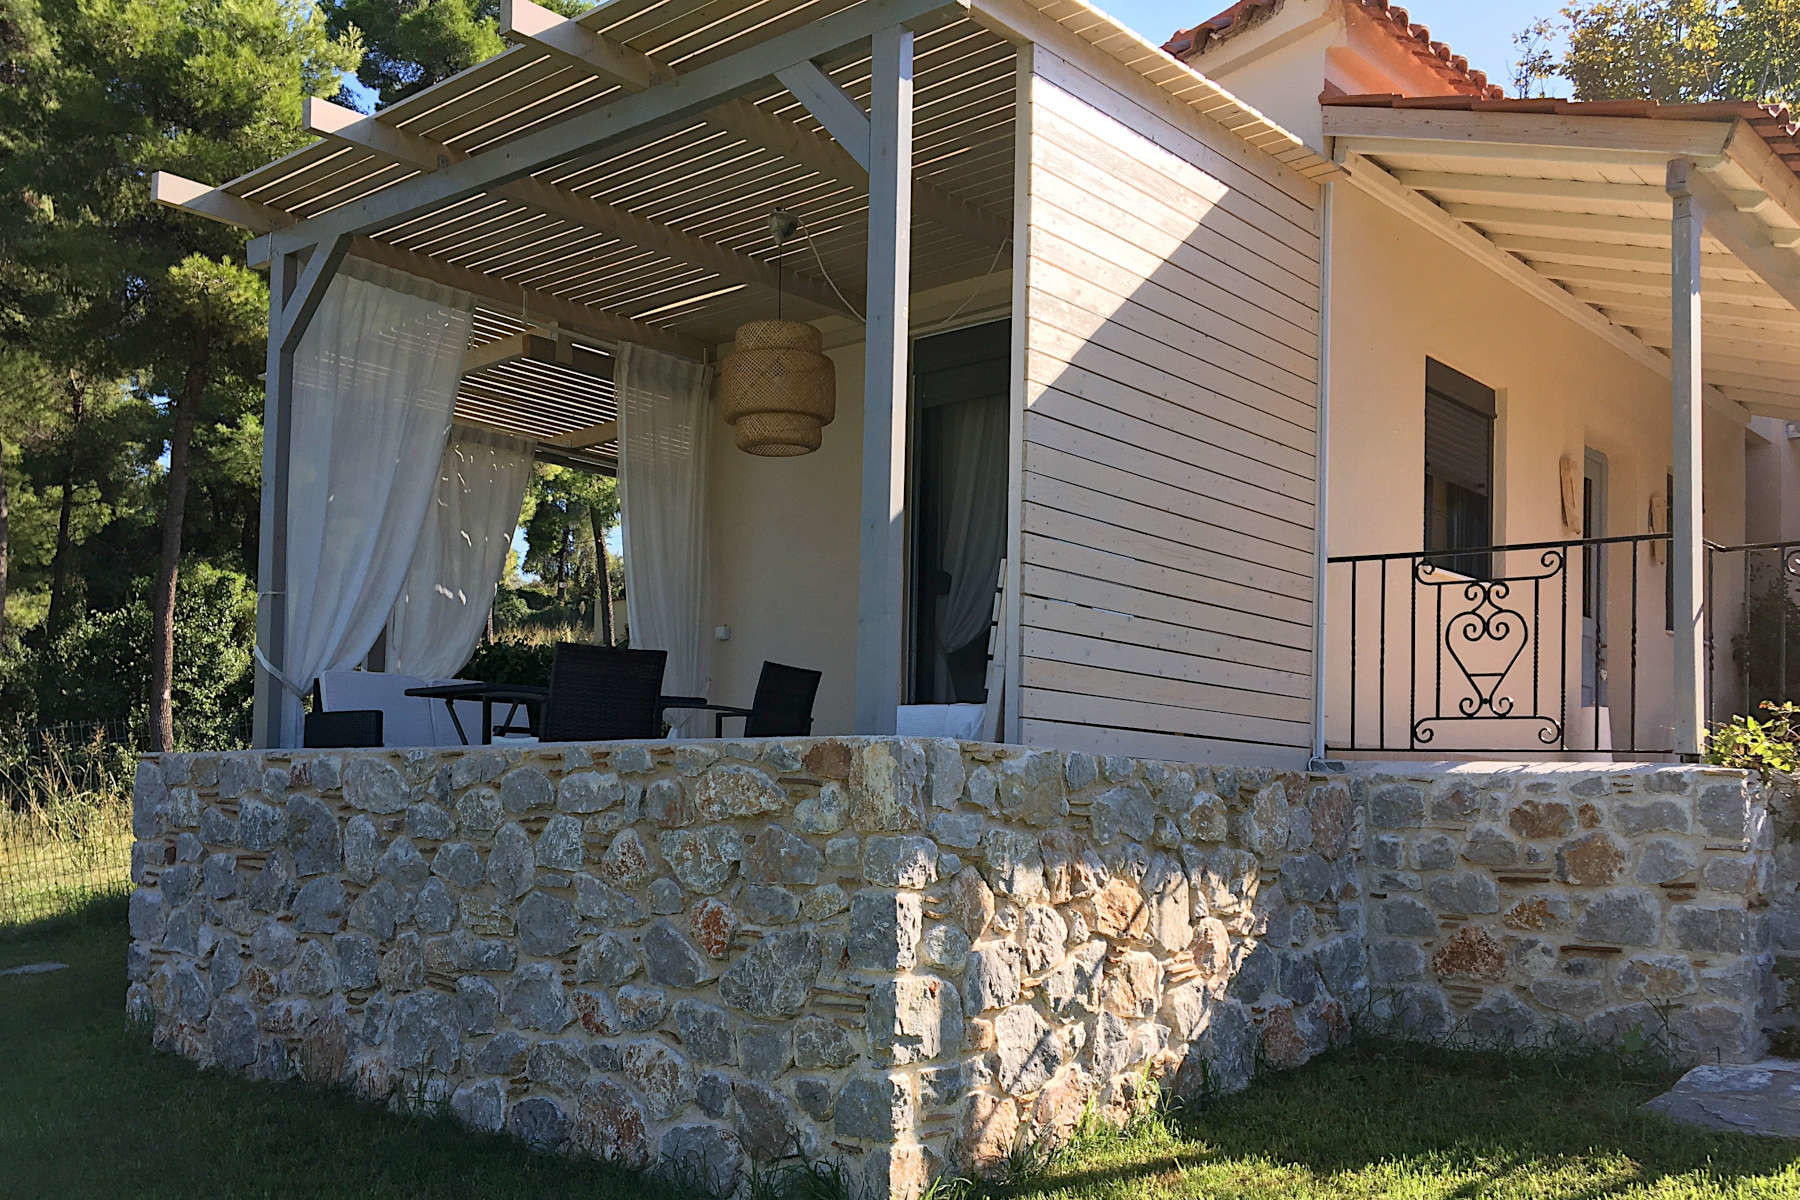 The ideal Greek island bungalow overlooking the garden lawn, pine trees and a superb, unobstructed view of the Aegean Sea, it is all you could ask for.